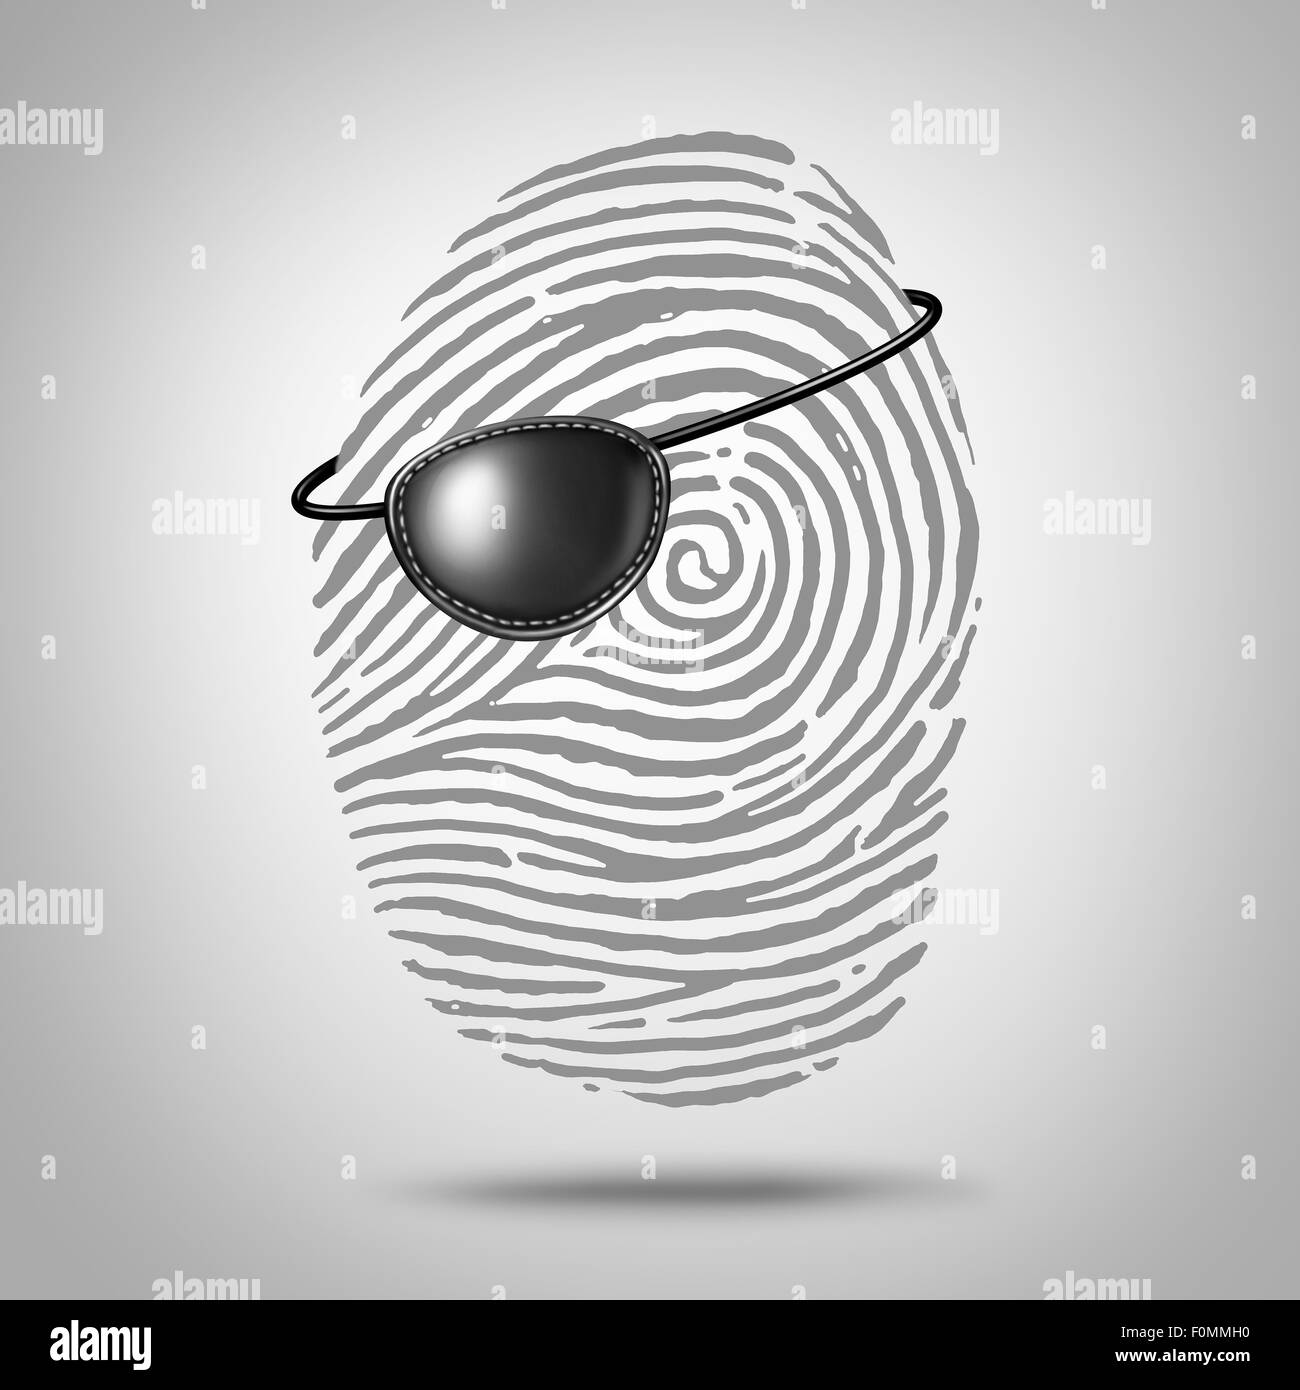 Privacy piracy concept and identity theft symbol as a finger print or fingerprint icon with a pirate eye patch as - Stock Image